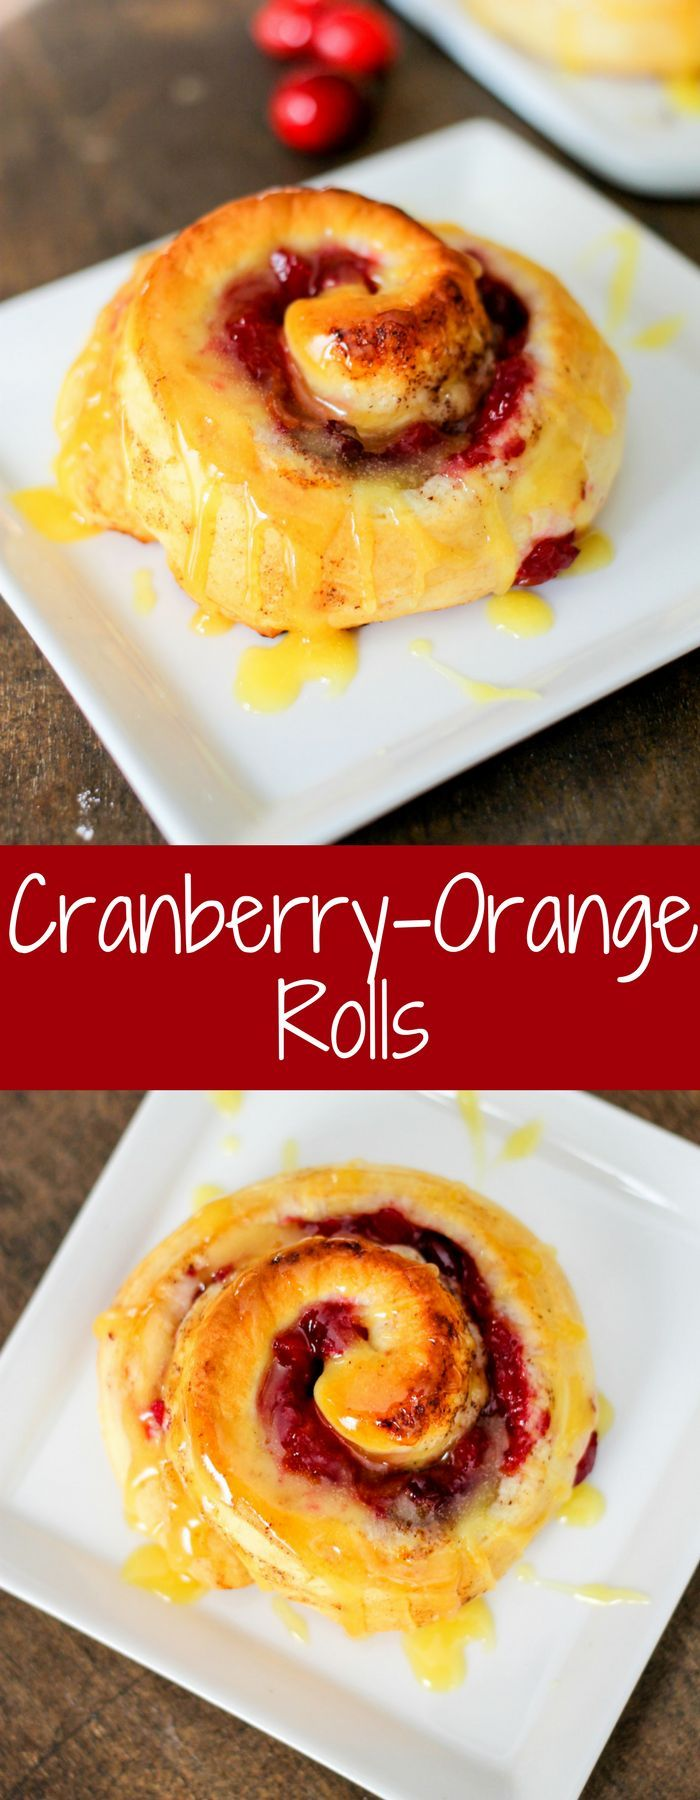 Bejeweled Cranberry-Orange Rolls are the perfect breakfast! Cranberry, pineapple, walnuts and ginger perfectly complement the orange cinnamon rolls! They were a category winner in the 48th Pillsbury Bake-off Contest as well! #MadeAtHome #PillsburyBakeOff #Sponsored @pillsbury